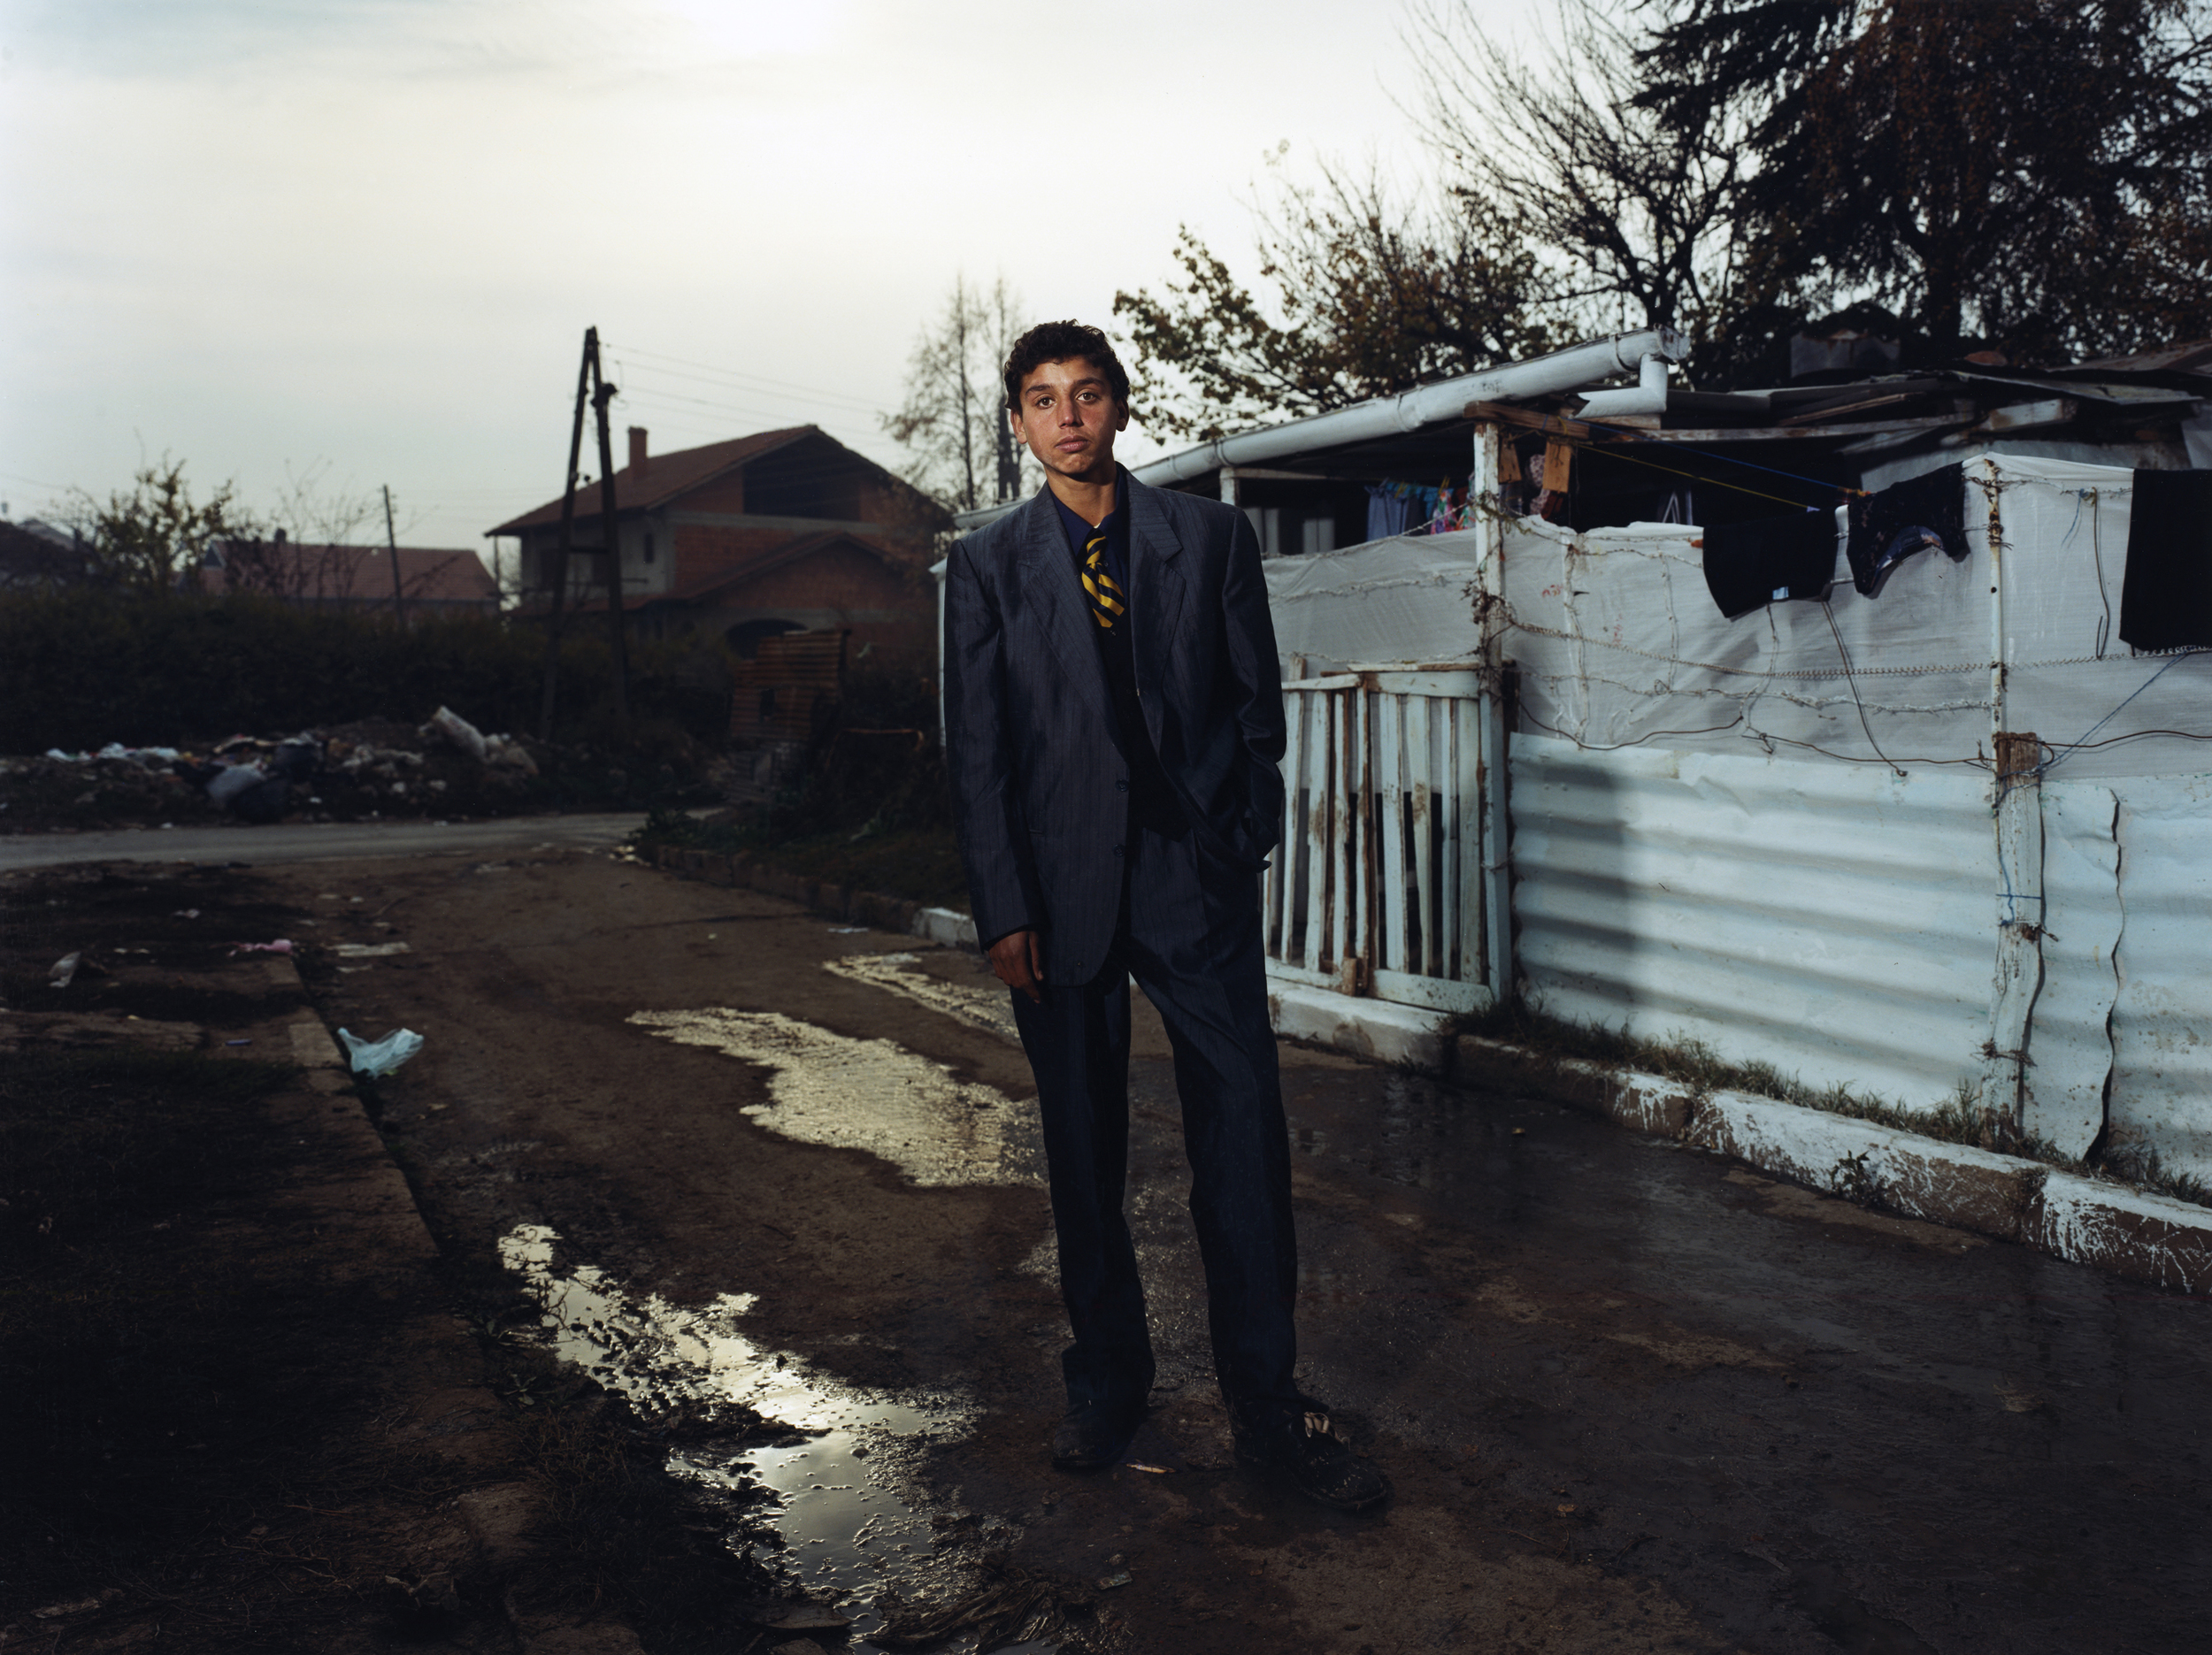 Elvis, Gypsie (Roma) -Shutka, Macedonia. Shutka, just outside of the Mecedonian capital Skopia is the only fully autonomous Roma-run town in Europe, with it's own news station, school system and municipal services. Romani serves as the official language.